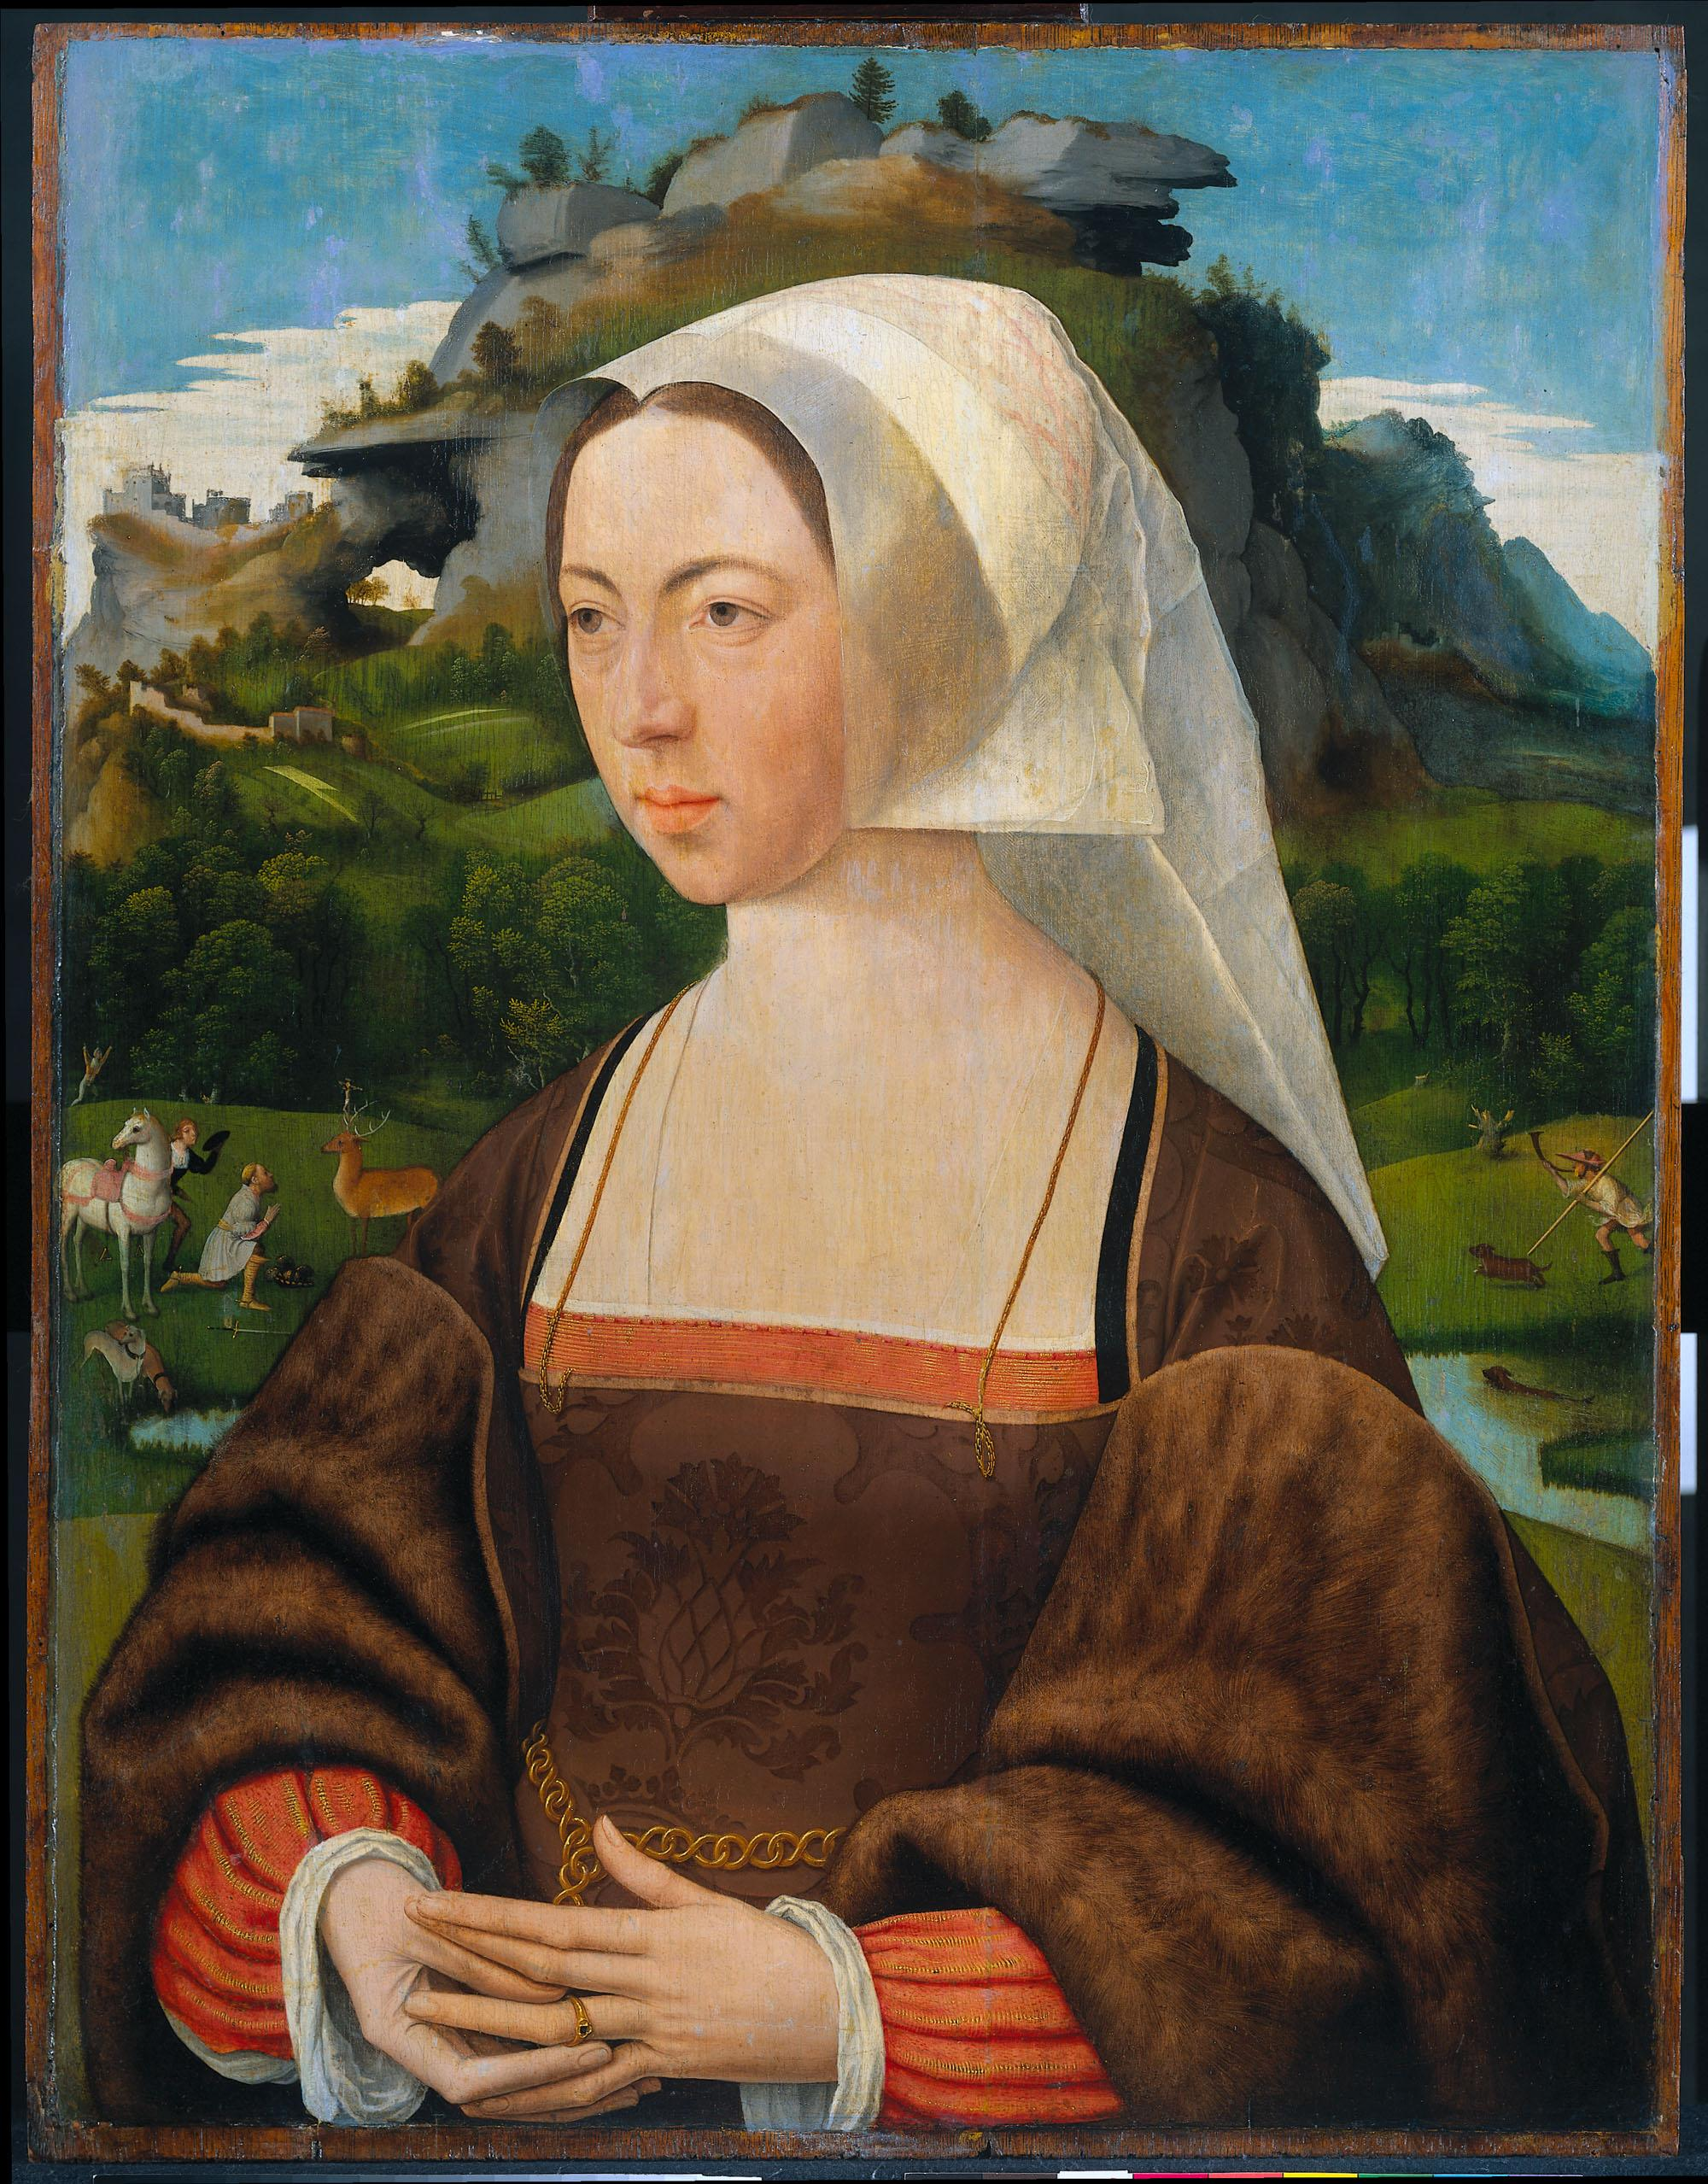 1530 - Portrait of a woman